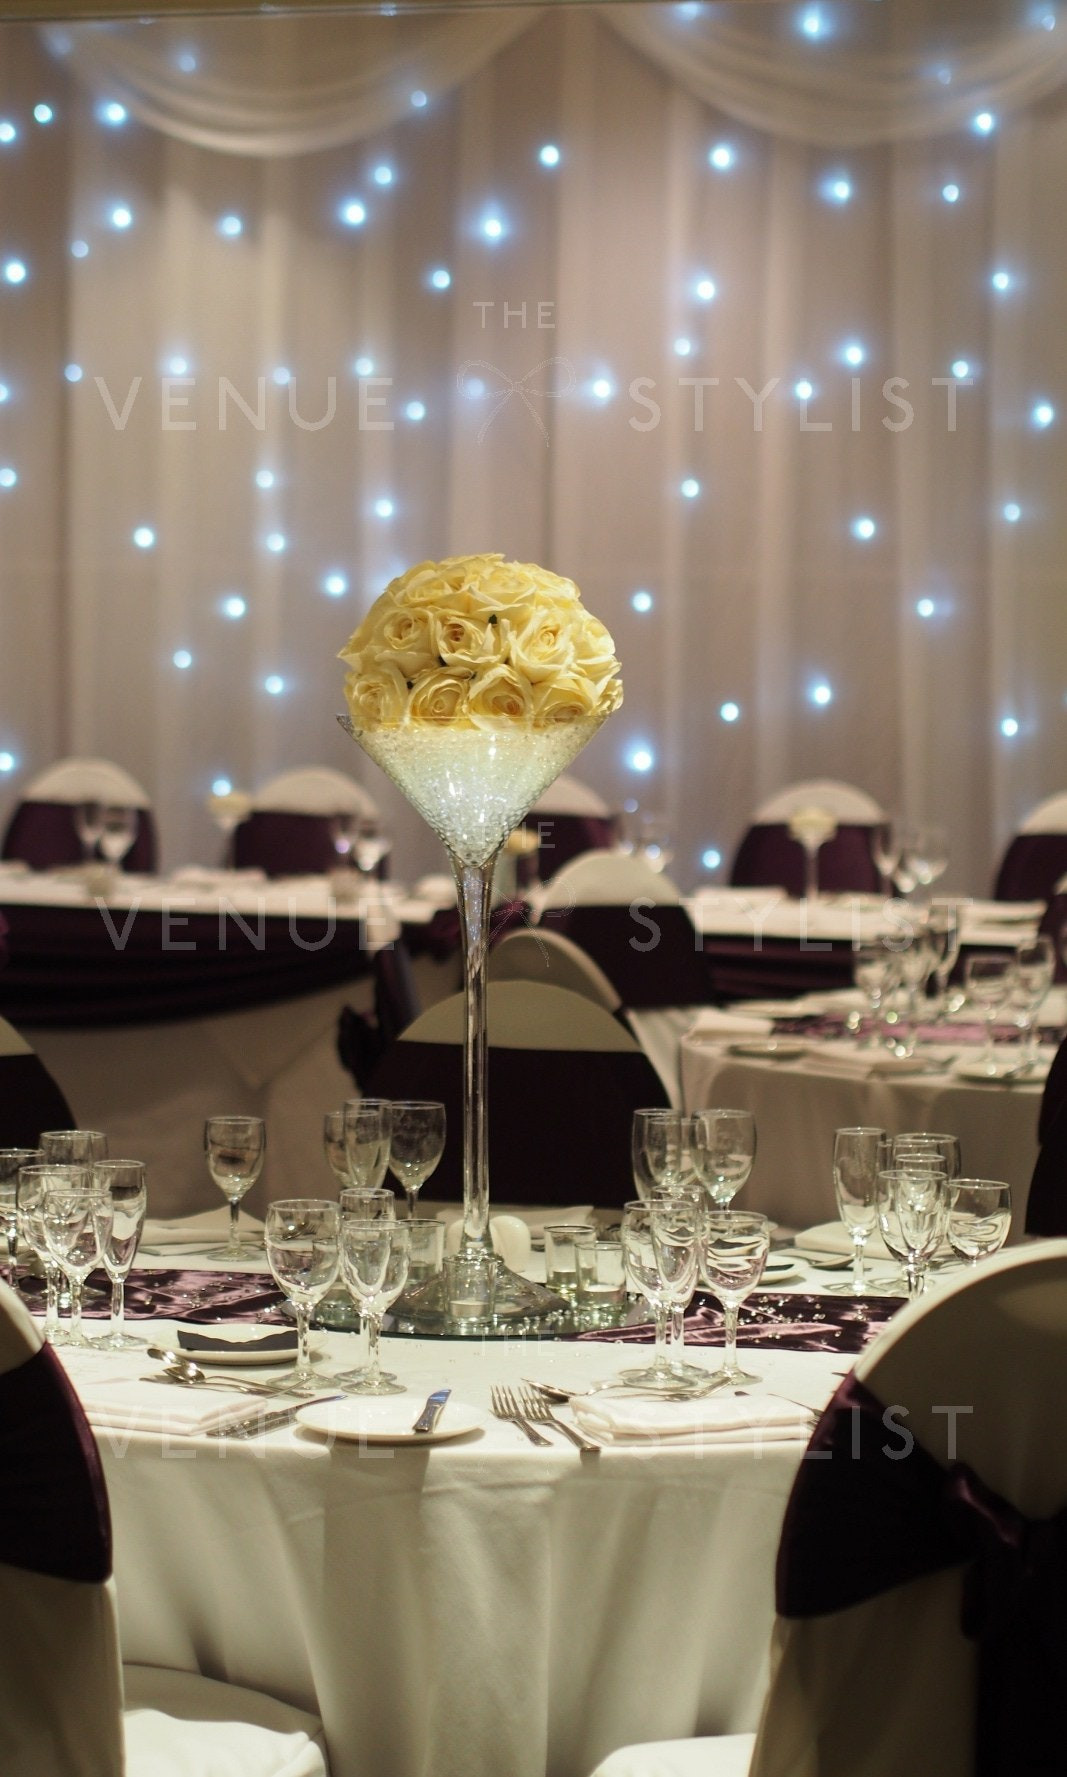 23 Stunning White Table Vase 2021 free download white table vase of blue and silver wedding decorations unique exclusive wedding decor for information